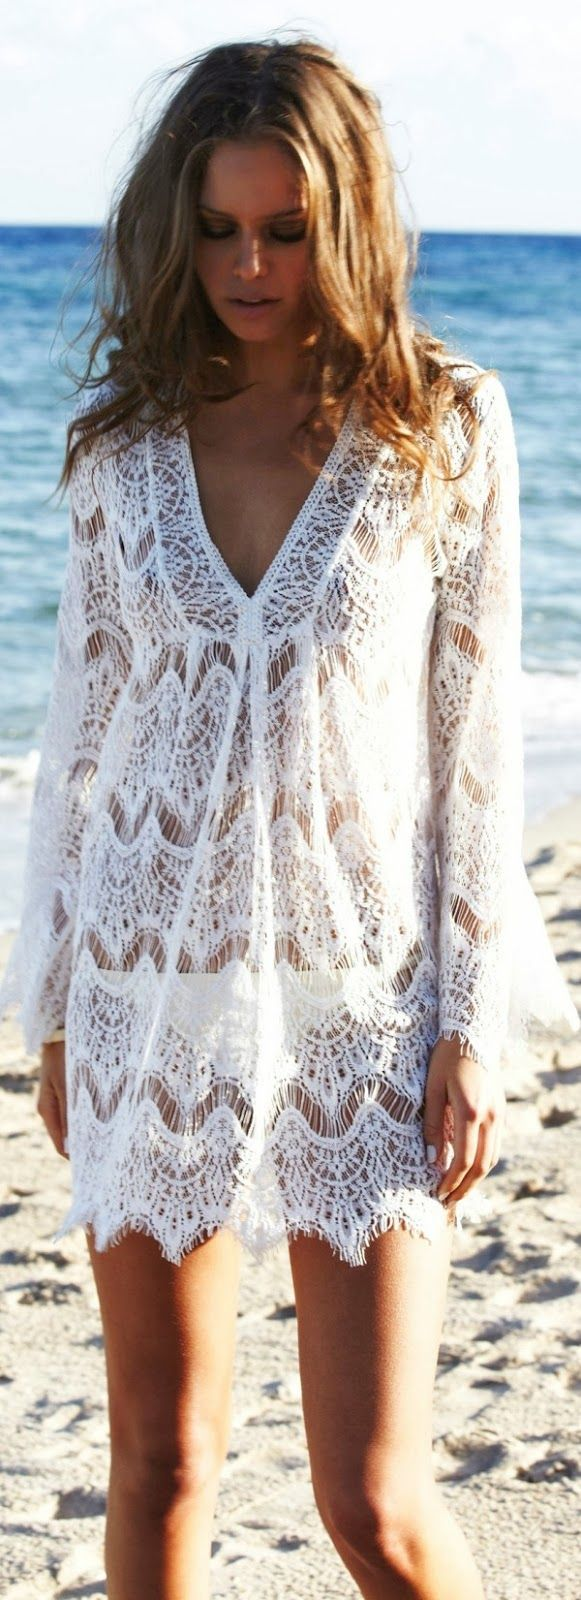 Gorgeous white lace detail beach dress                                                                                                                                                      Más